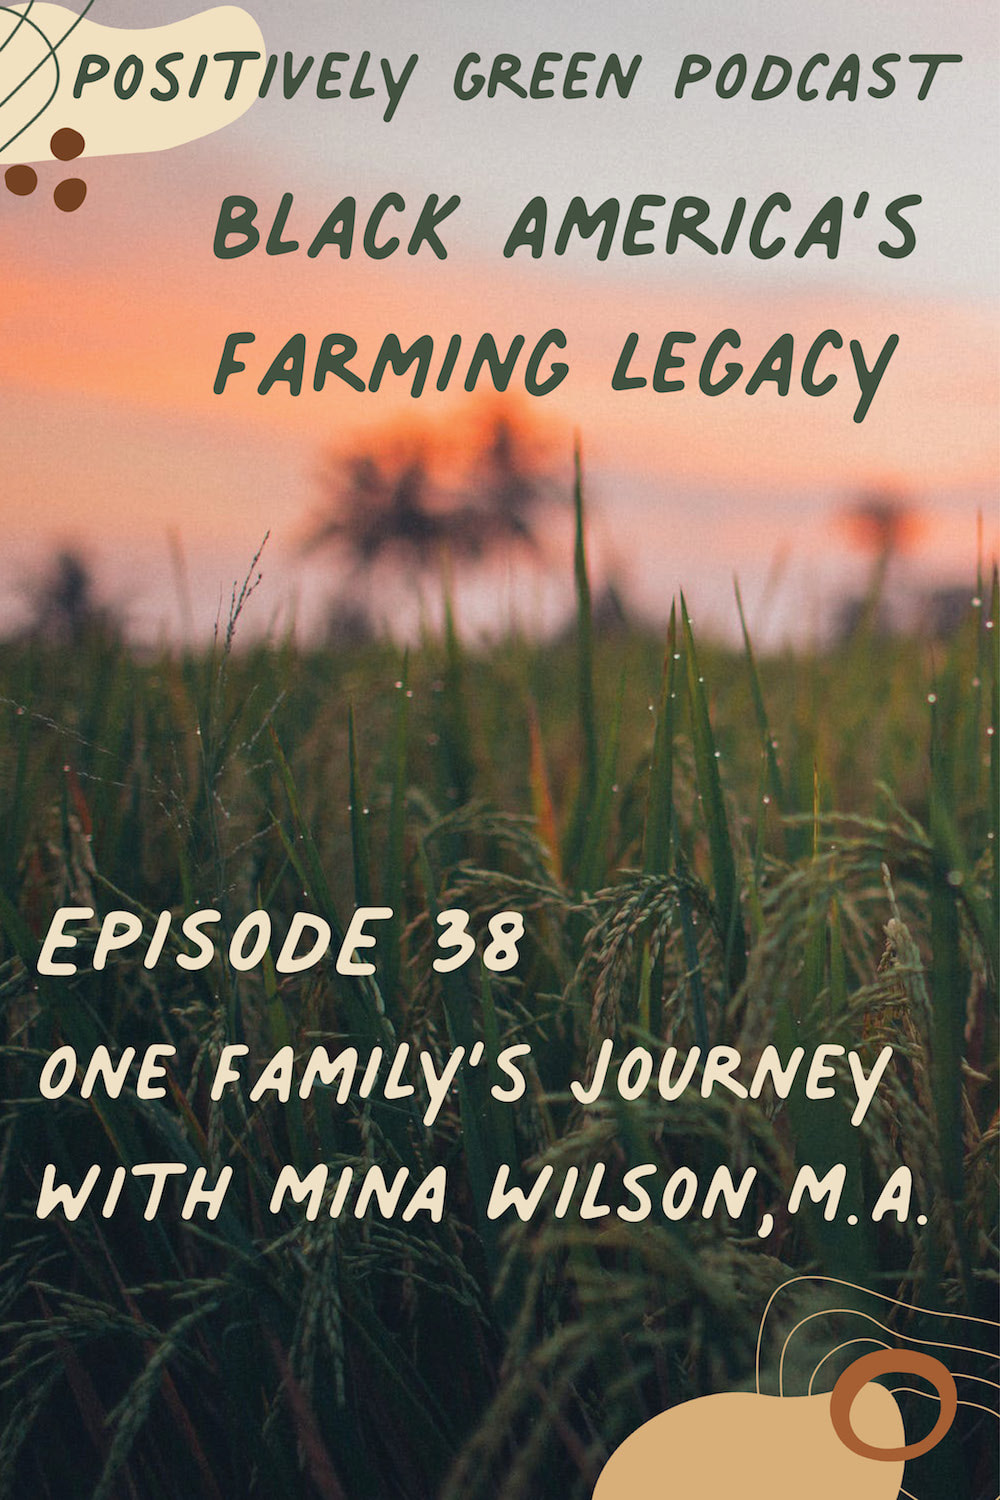 The Positively Green Podcast Episode 38 Black America's Farming Legacy - One Family's Journey with Mina Wilson